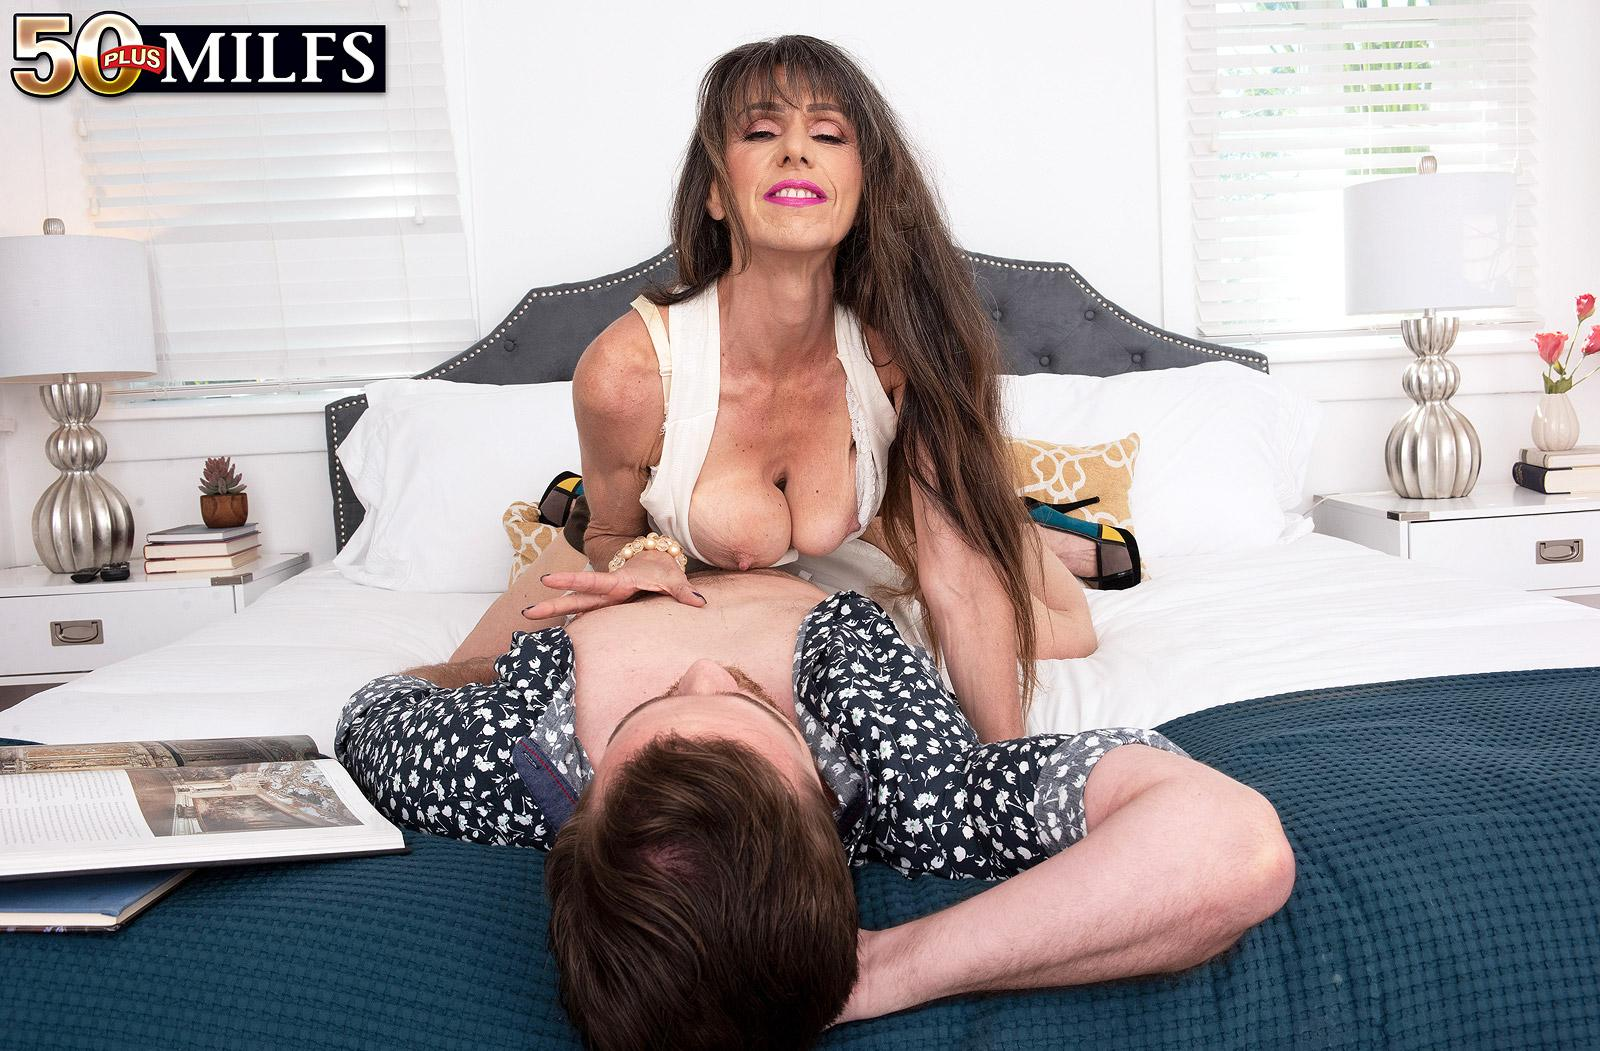 skinny, slightly scrawny and athletic older women  demands hard anal from her young admire picture 10